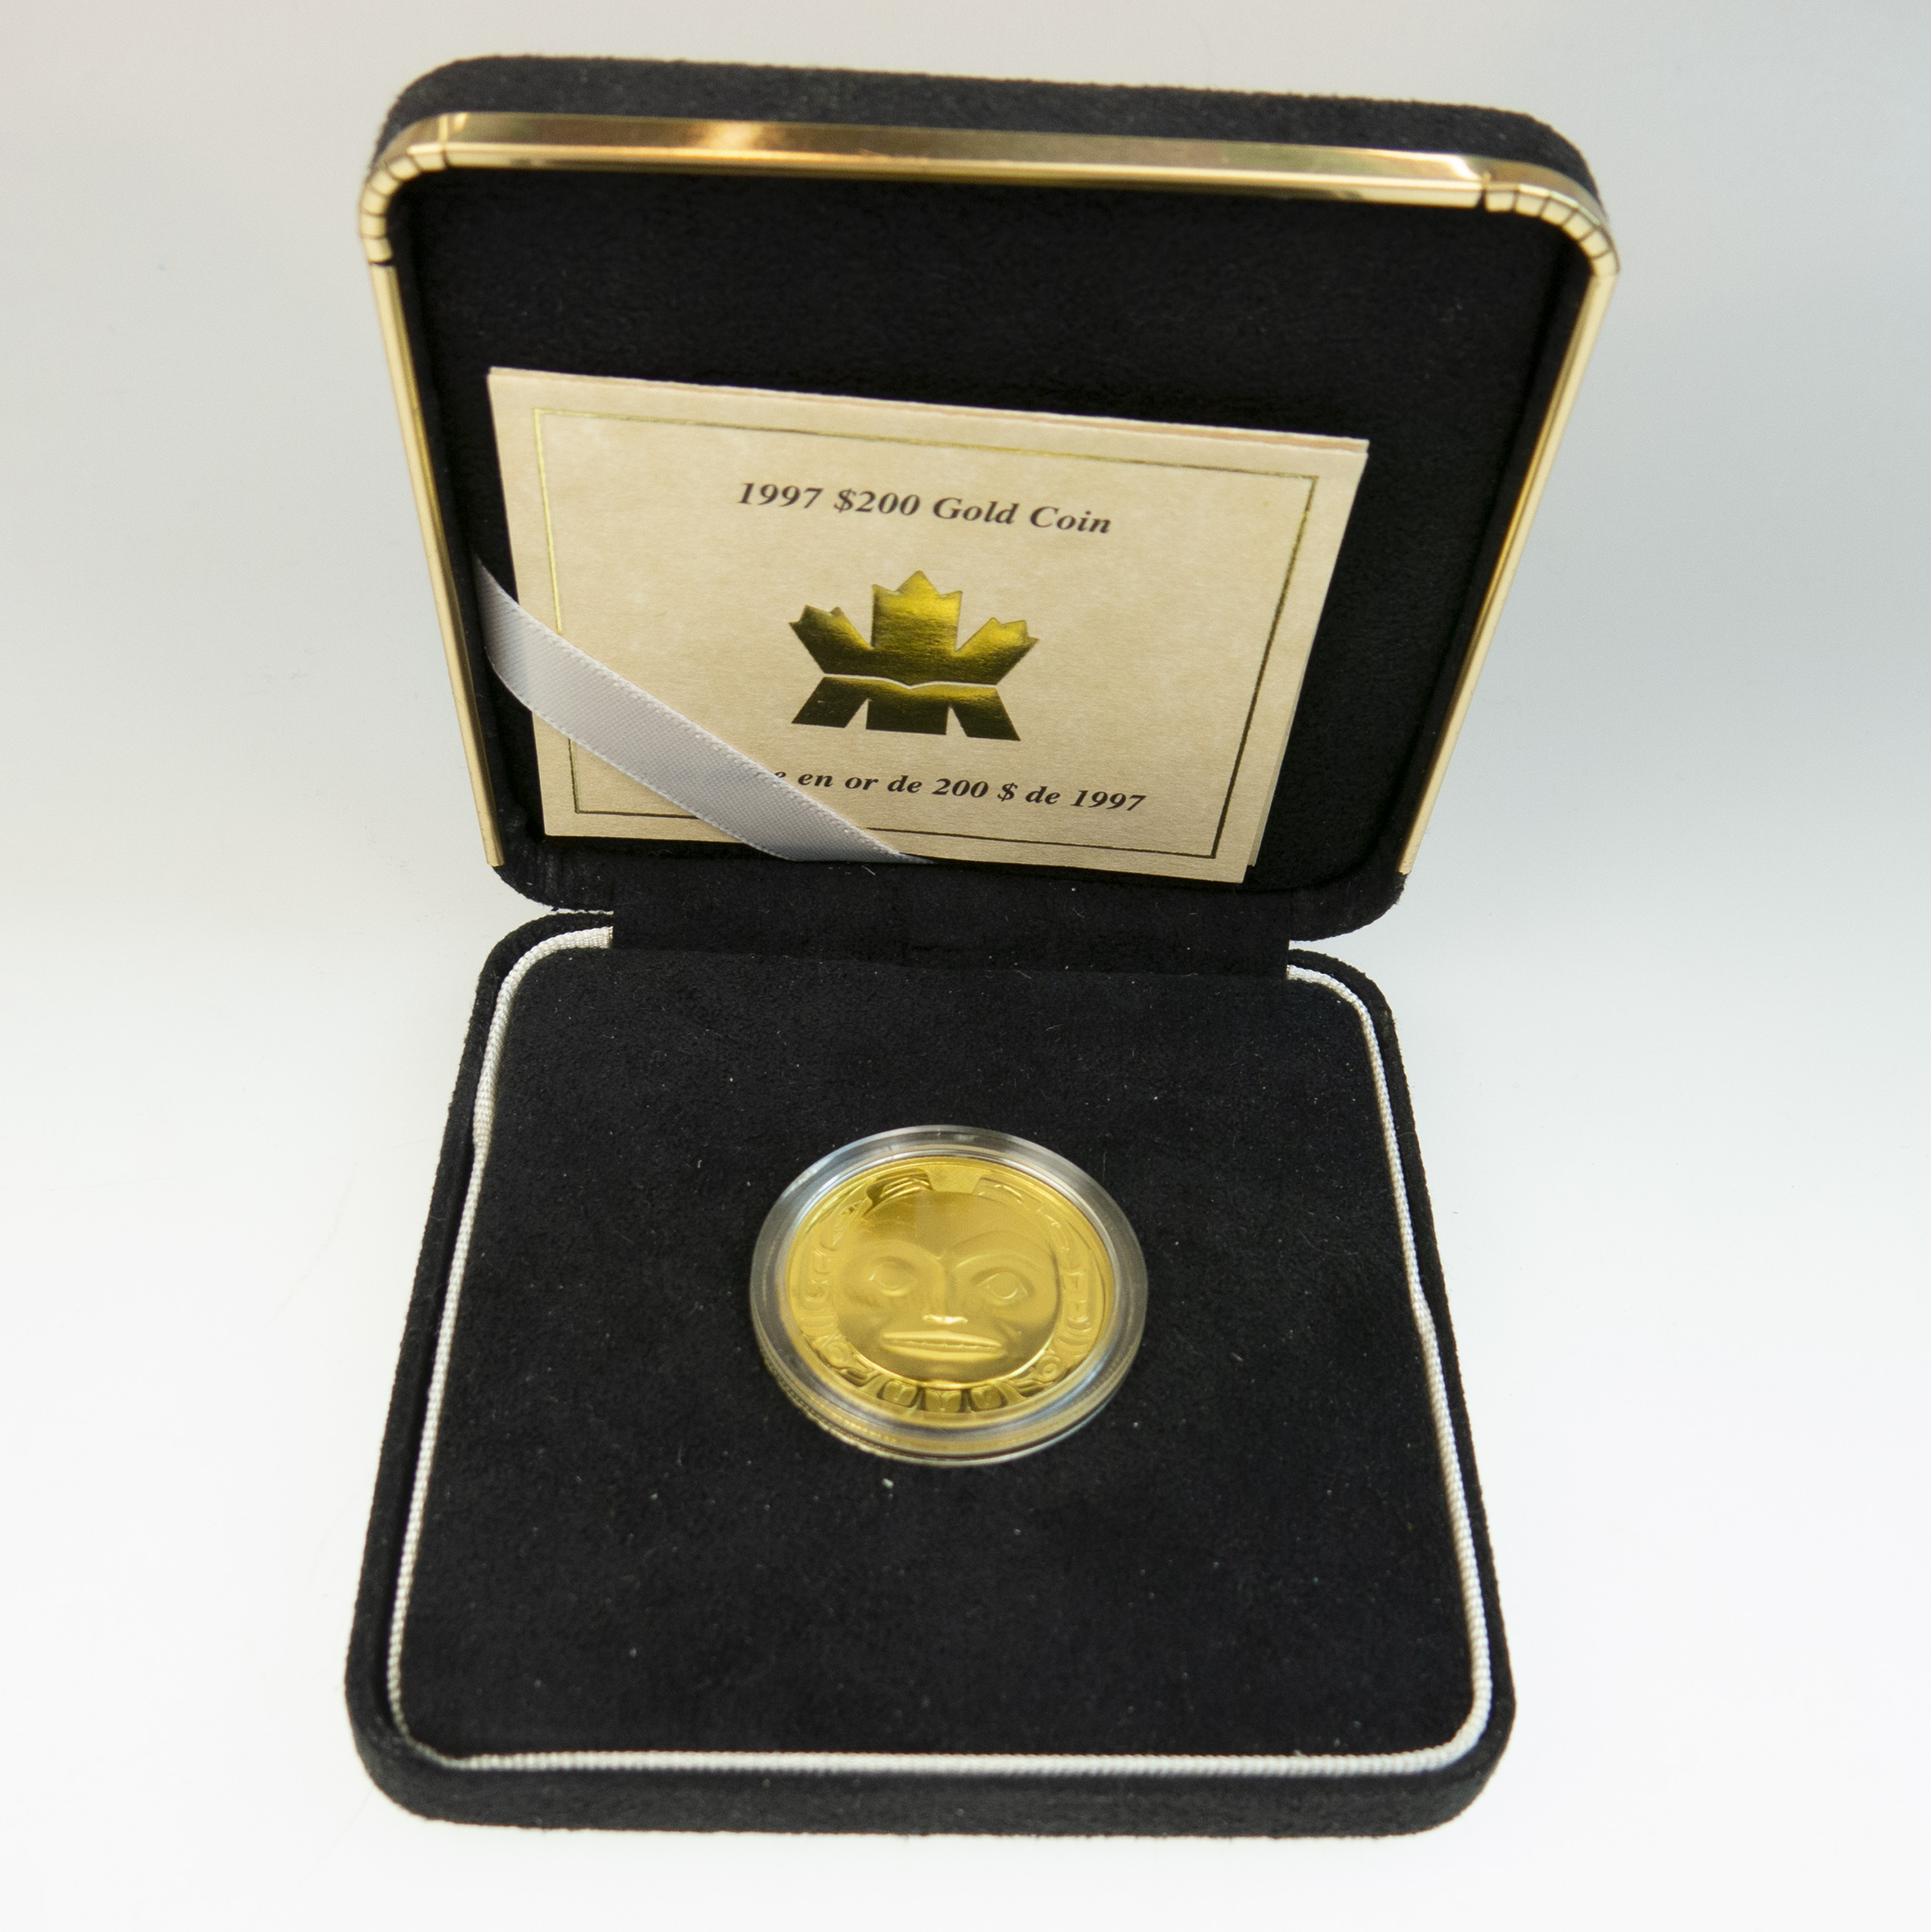 Canadian 2002 $200 Gold Coin